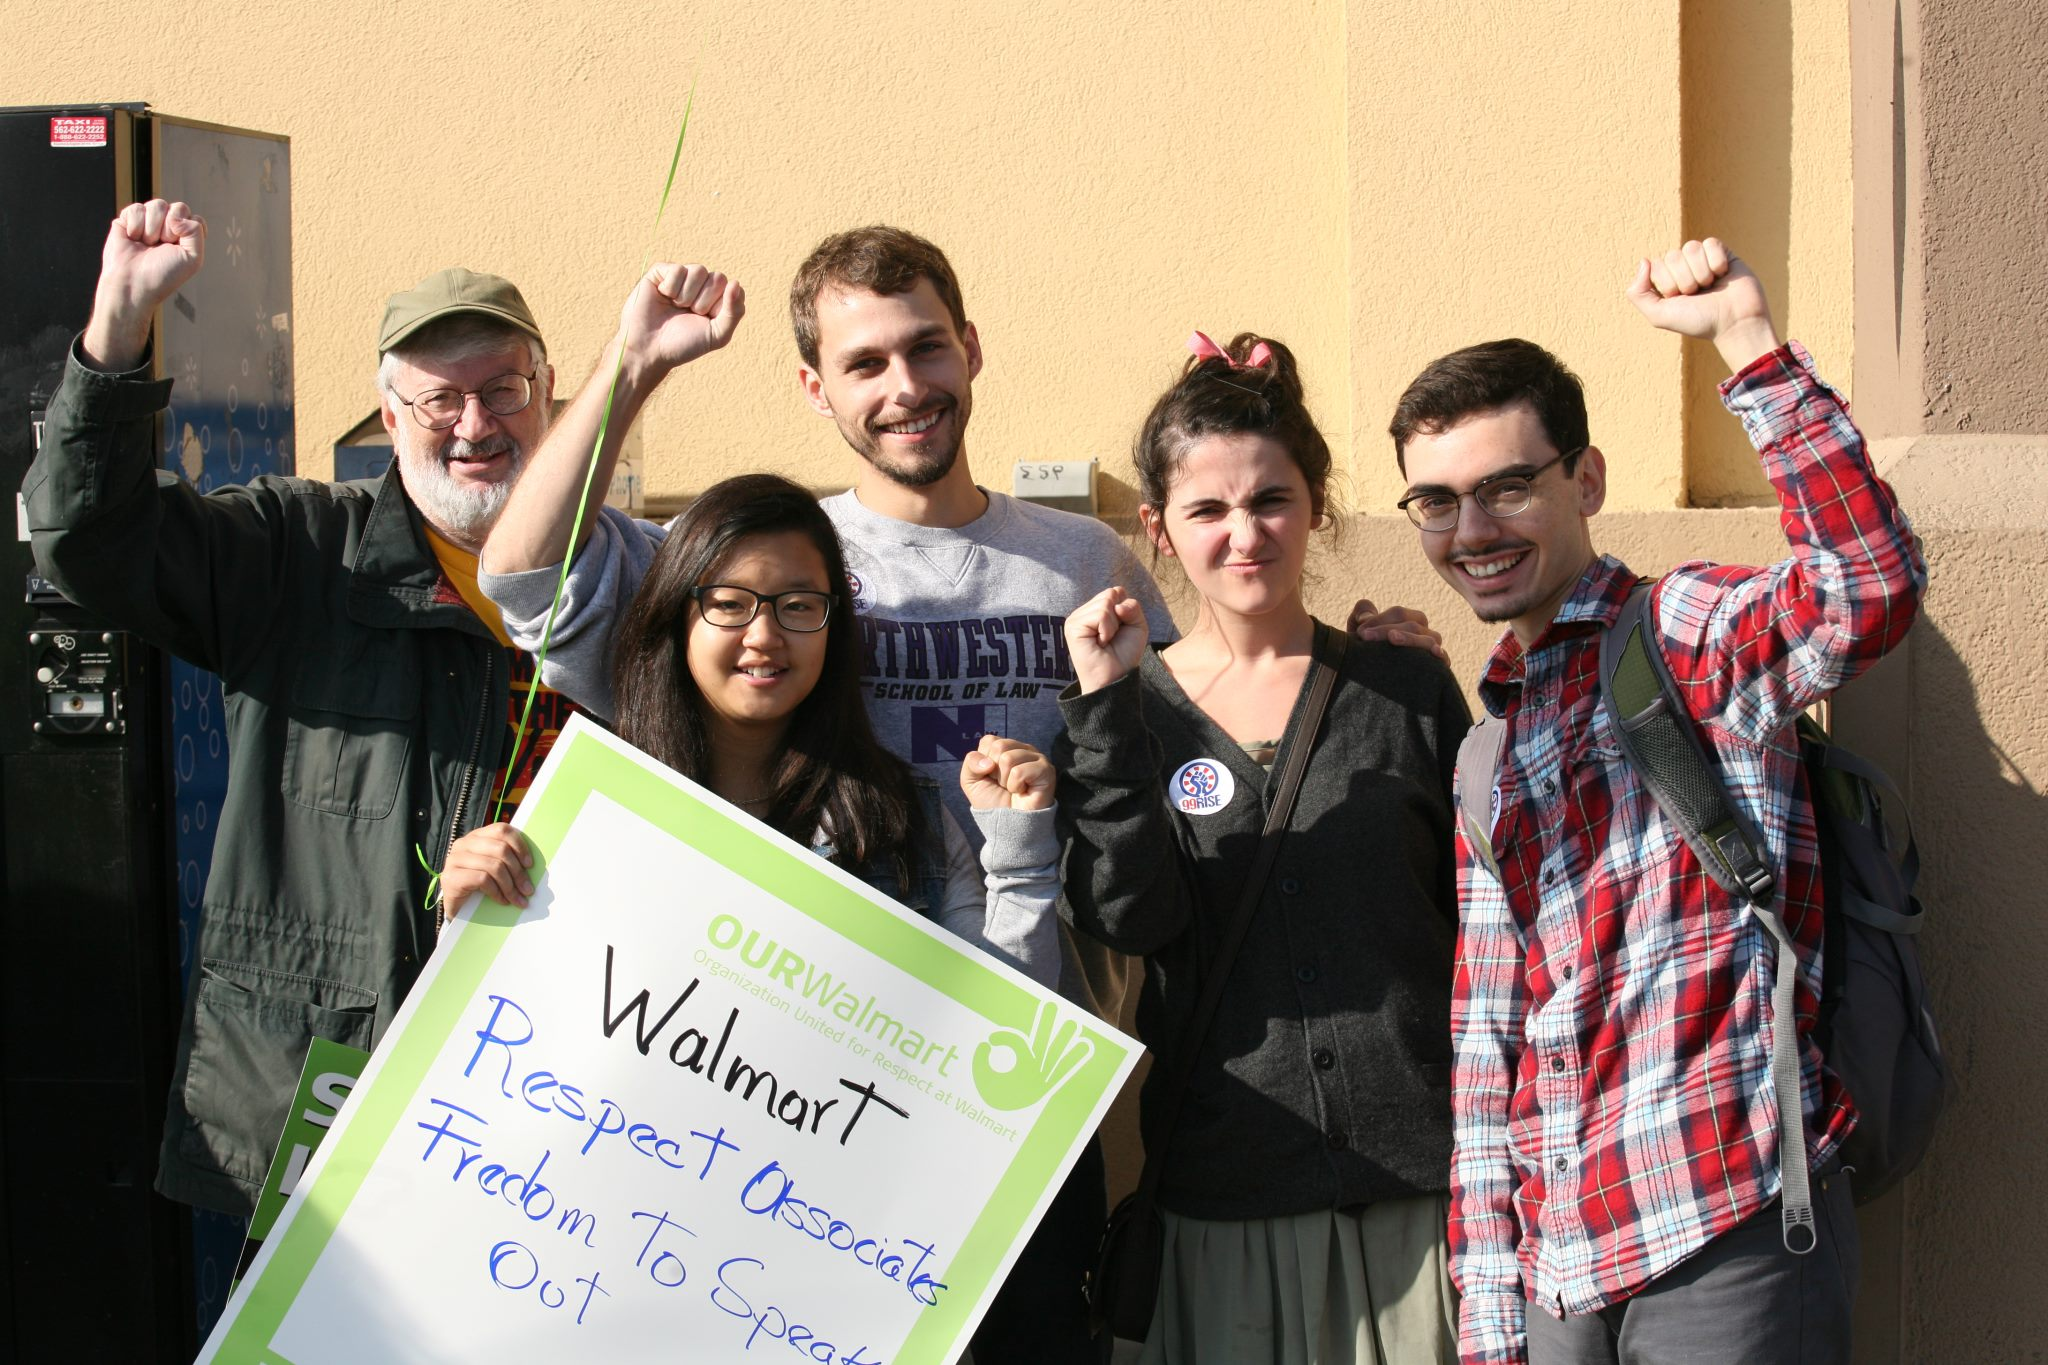 Oxy students and Professor Dreier at the Walmart Protest in Paramount, CA